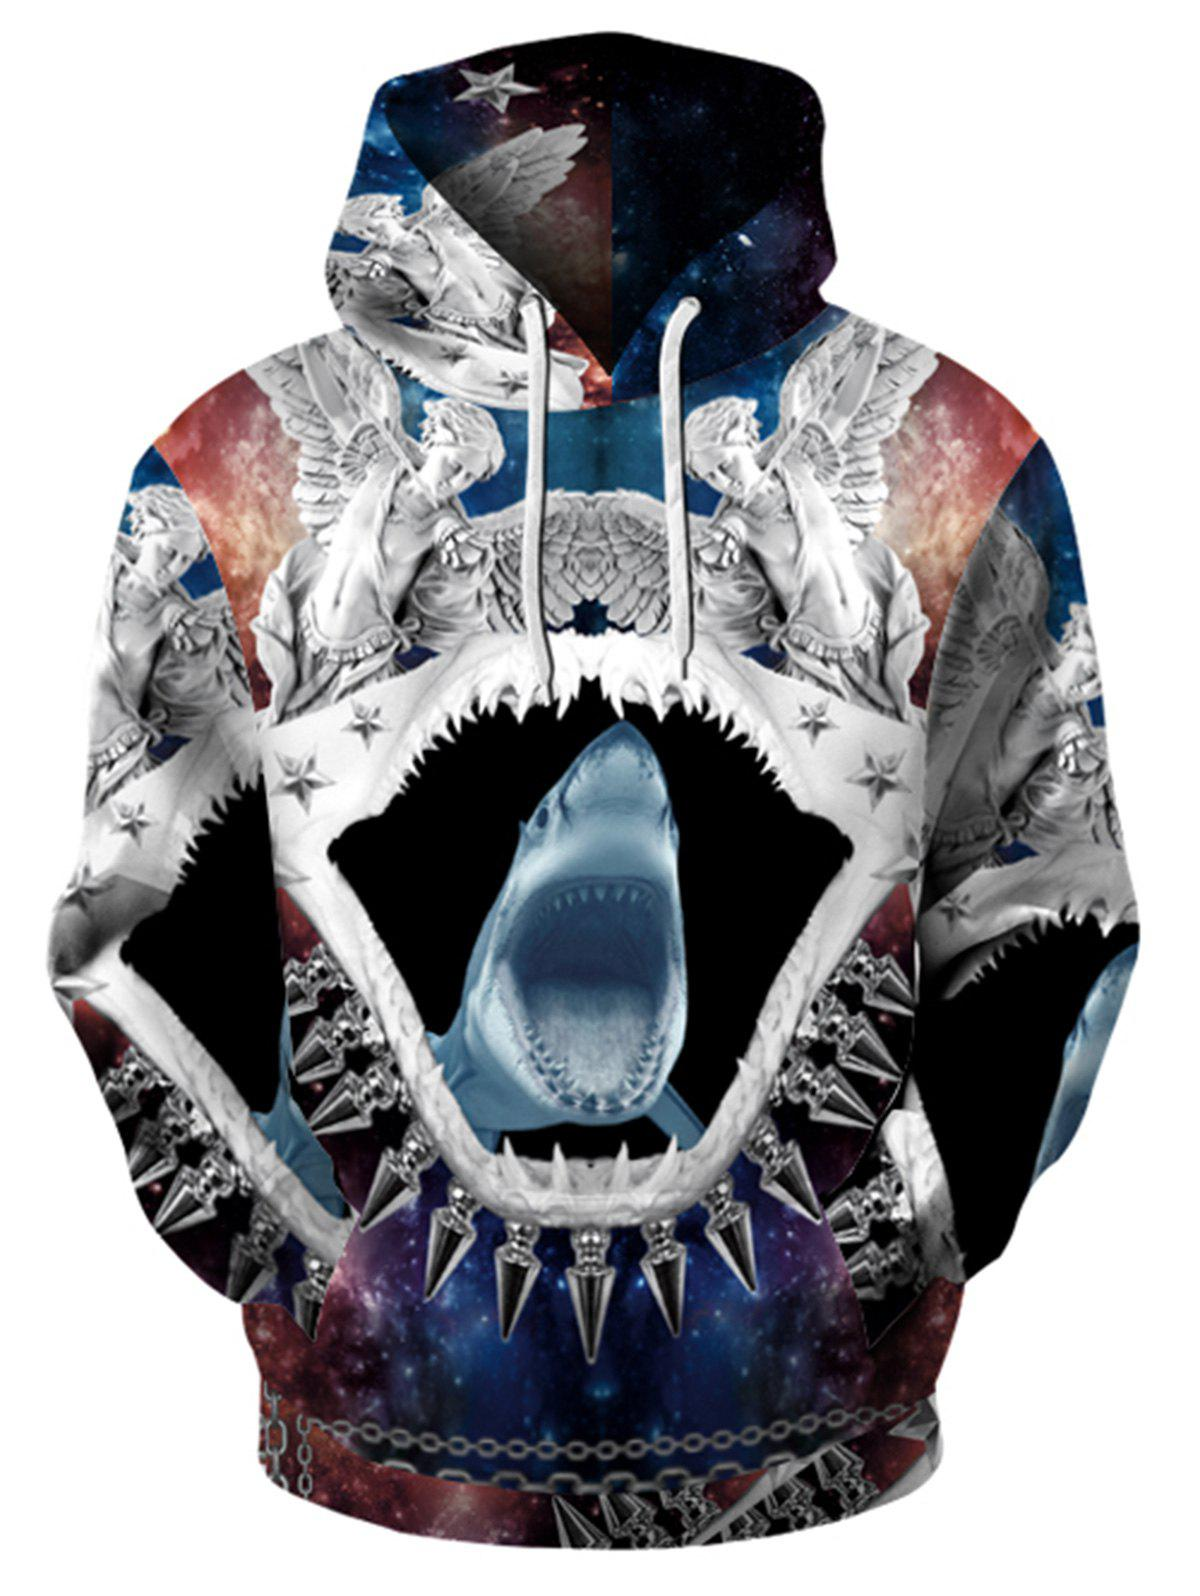 Sweat-Shirt à Capuche Imprimé Requin Style Abstrait 3D - multicolore M